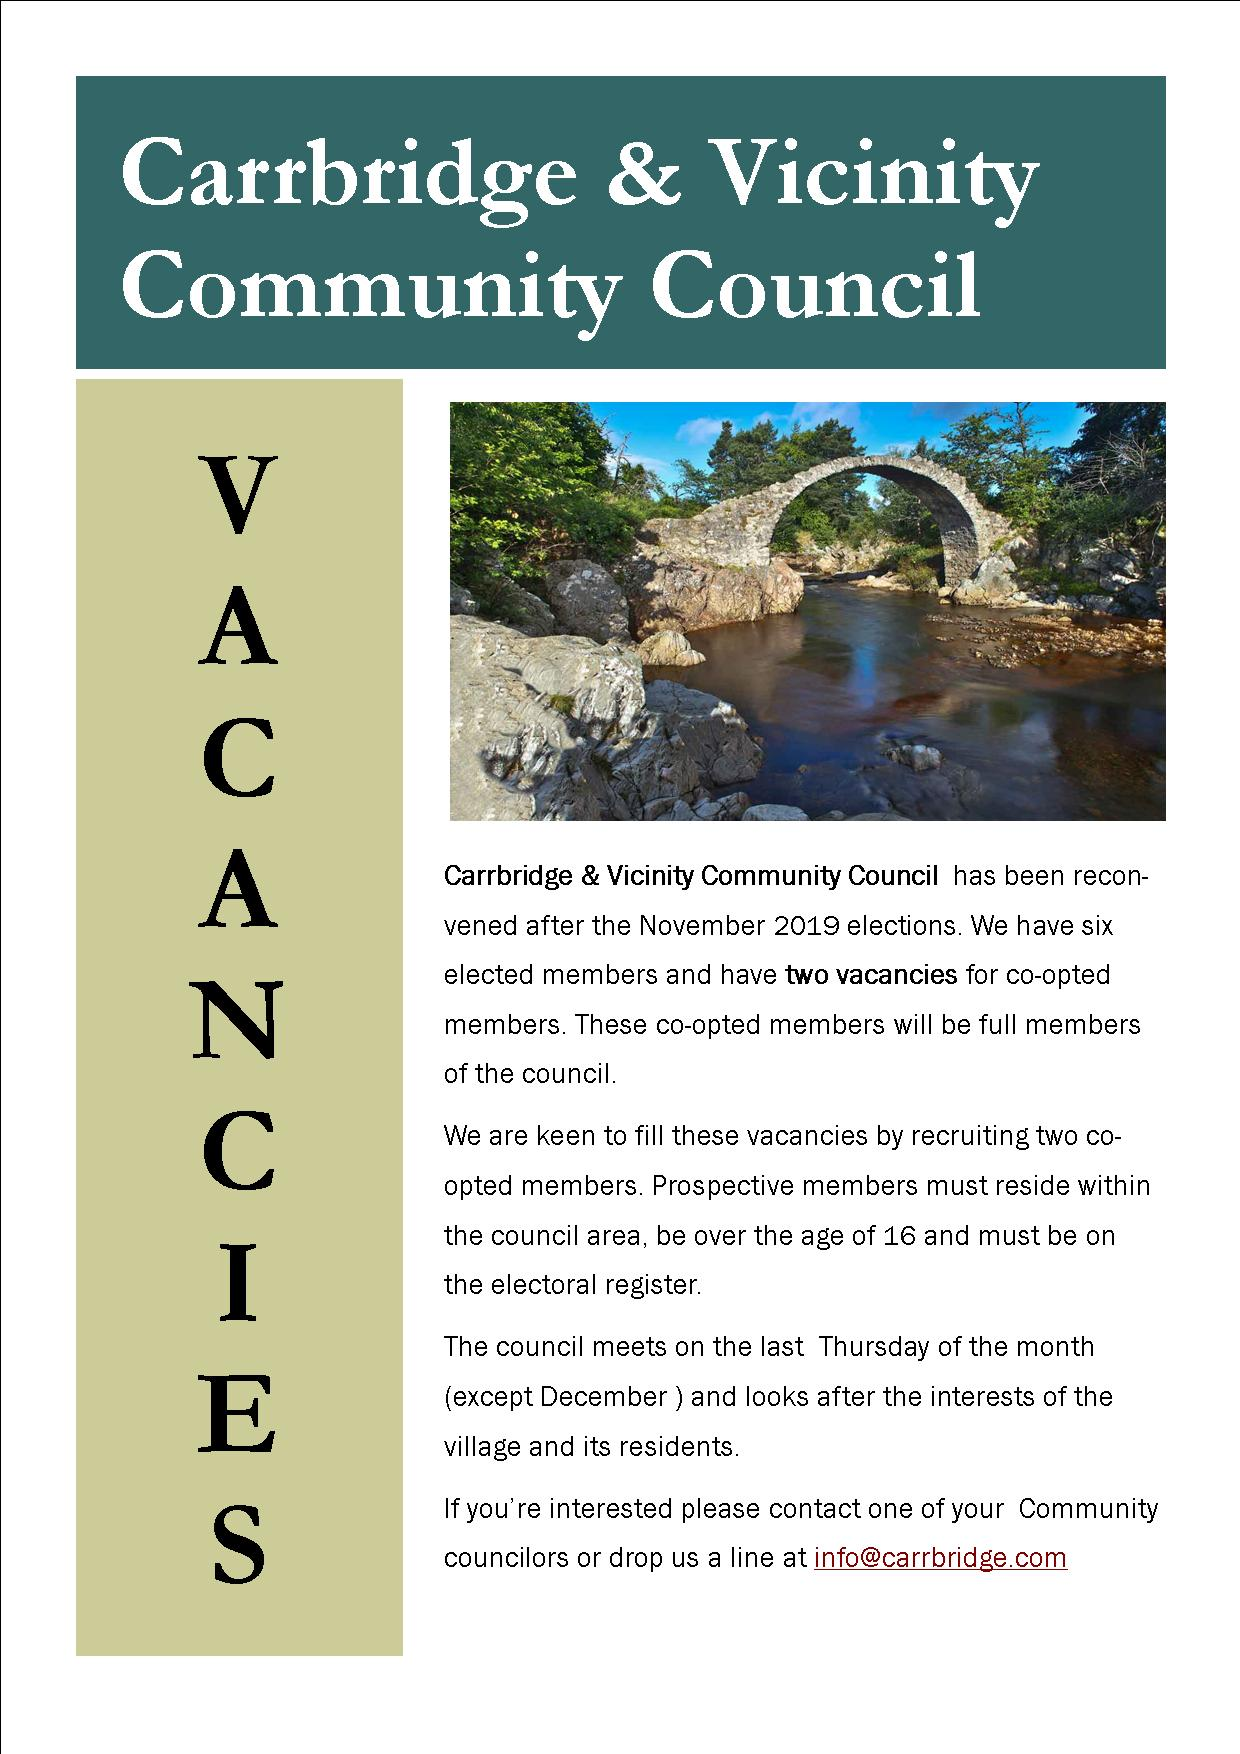 Carrbridge & Vicinity Community Council has been re-convened after the November 2019 elections. We have size elected members and have two vacancies for co-opted members. These co-opted members will be full members of the council. We are keen to fill these vacancies by recruiting two co-opted members. Prospective members must reside within the council area, be over the age of 16 and must be on the electoral register. The council meets on the last Thursday of the month (except December) and looks after the interests of the village and its residents. If you're interested please contact one of your Community Councillors or drop us a line at info@carrbridge.com